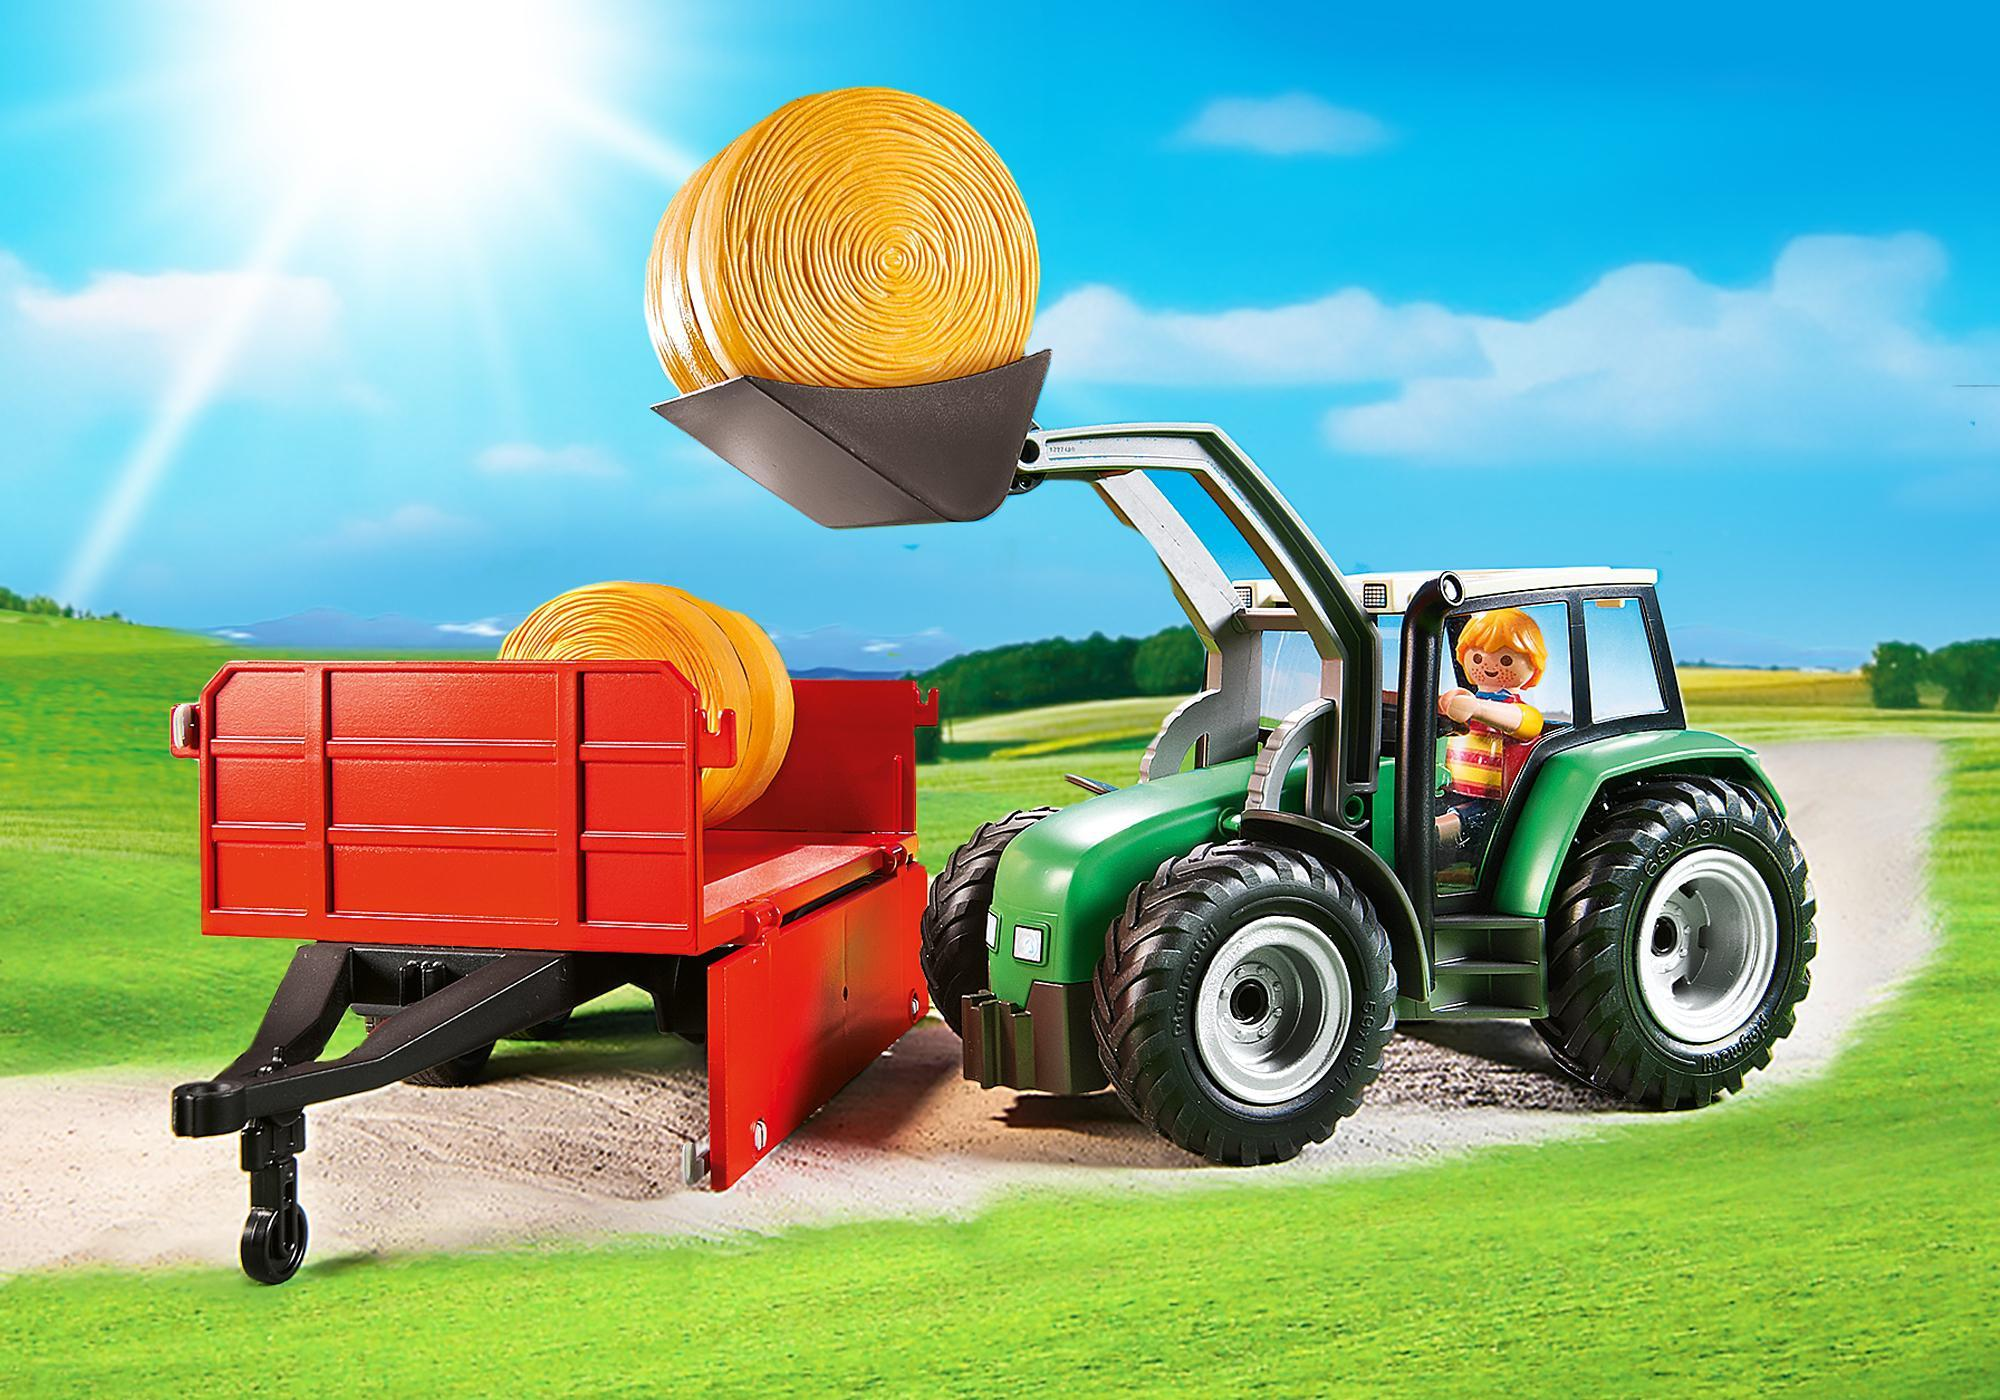 http://media.playmobil.com/i/playmobil/6130_product_extra3/Large Tractor with Trailer